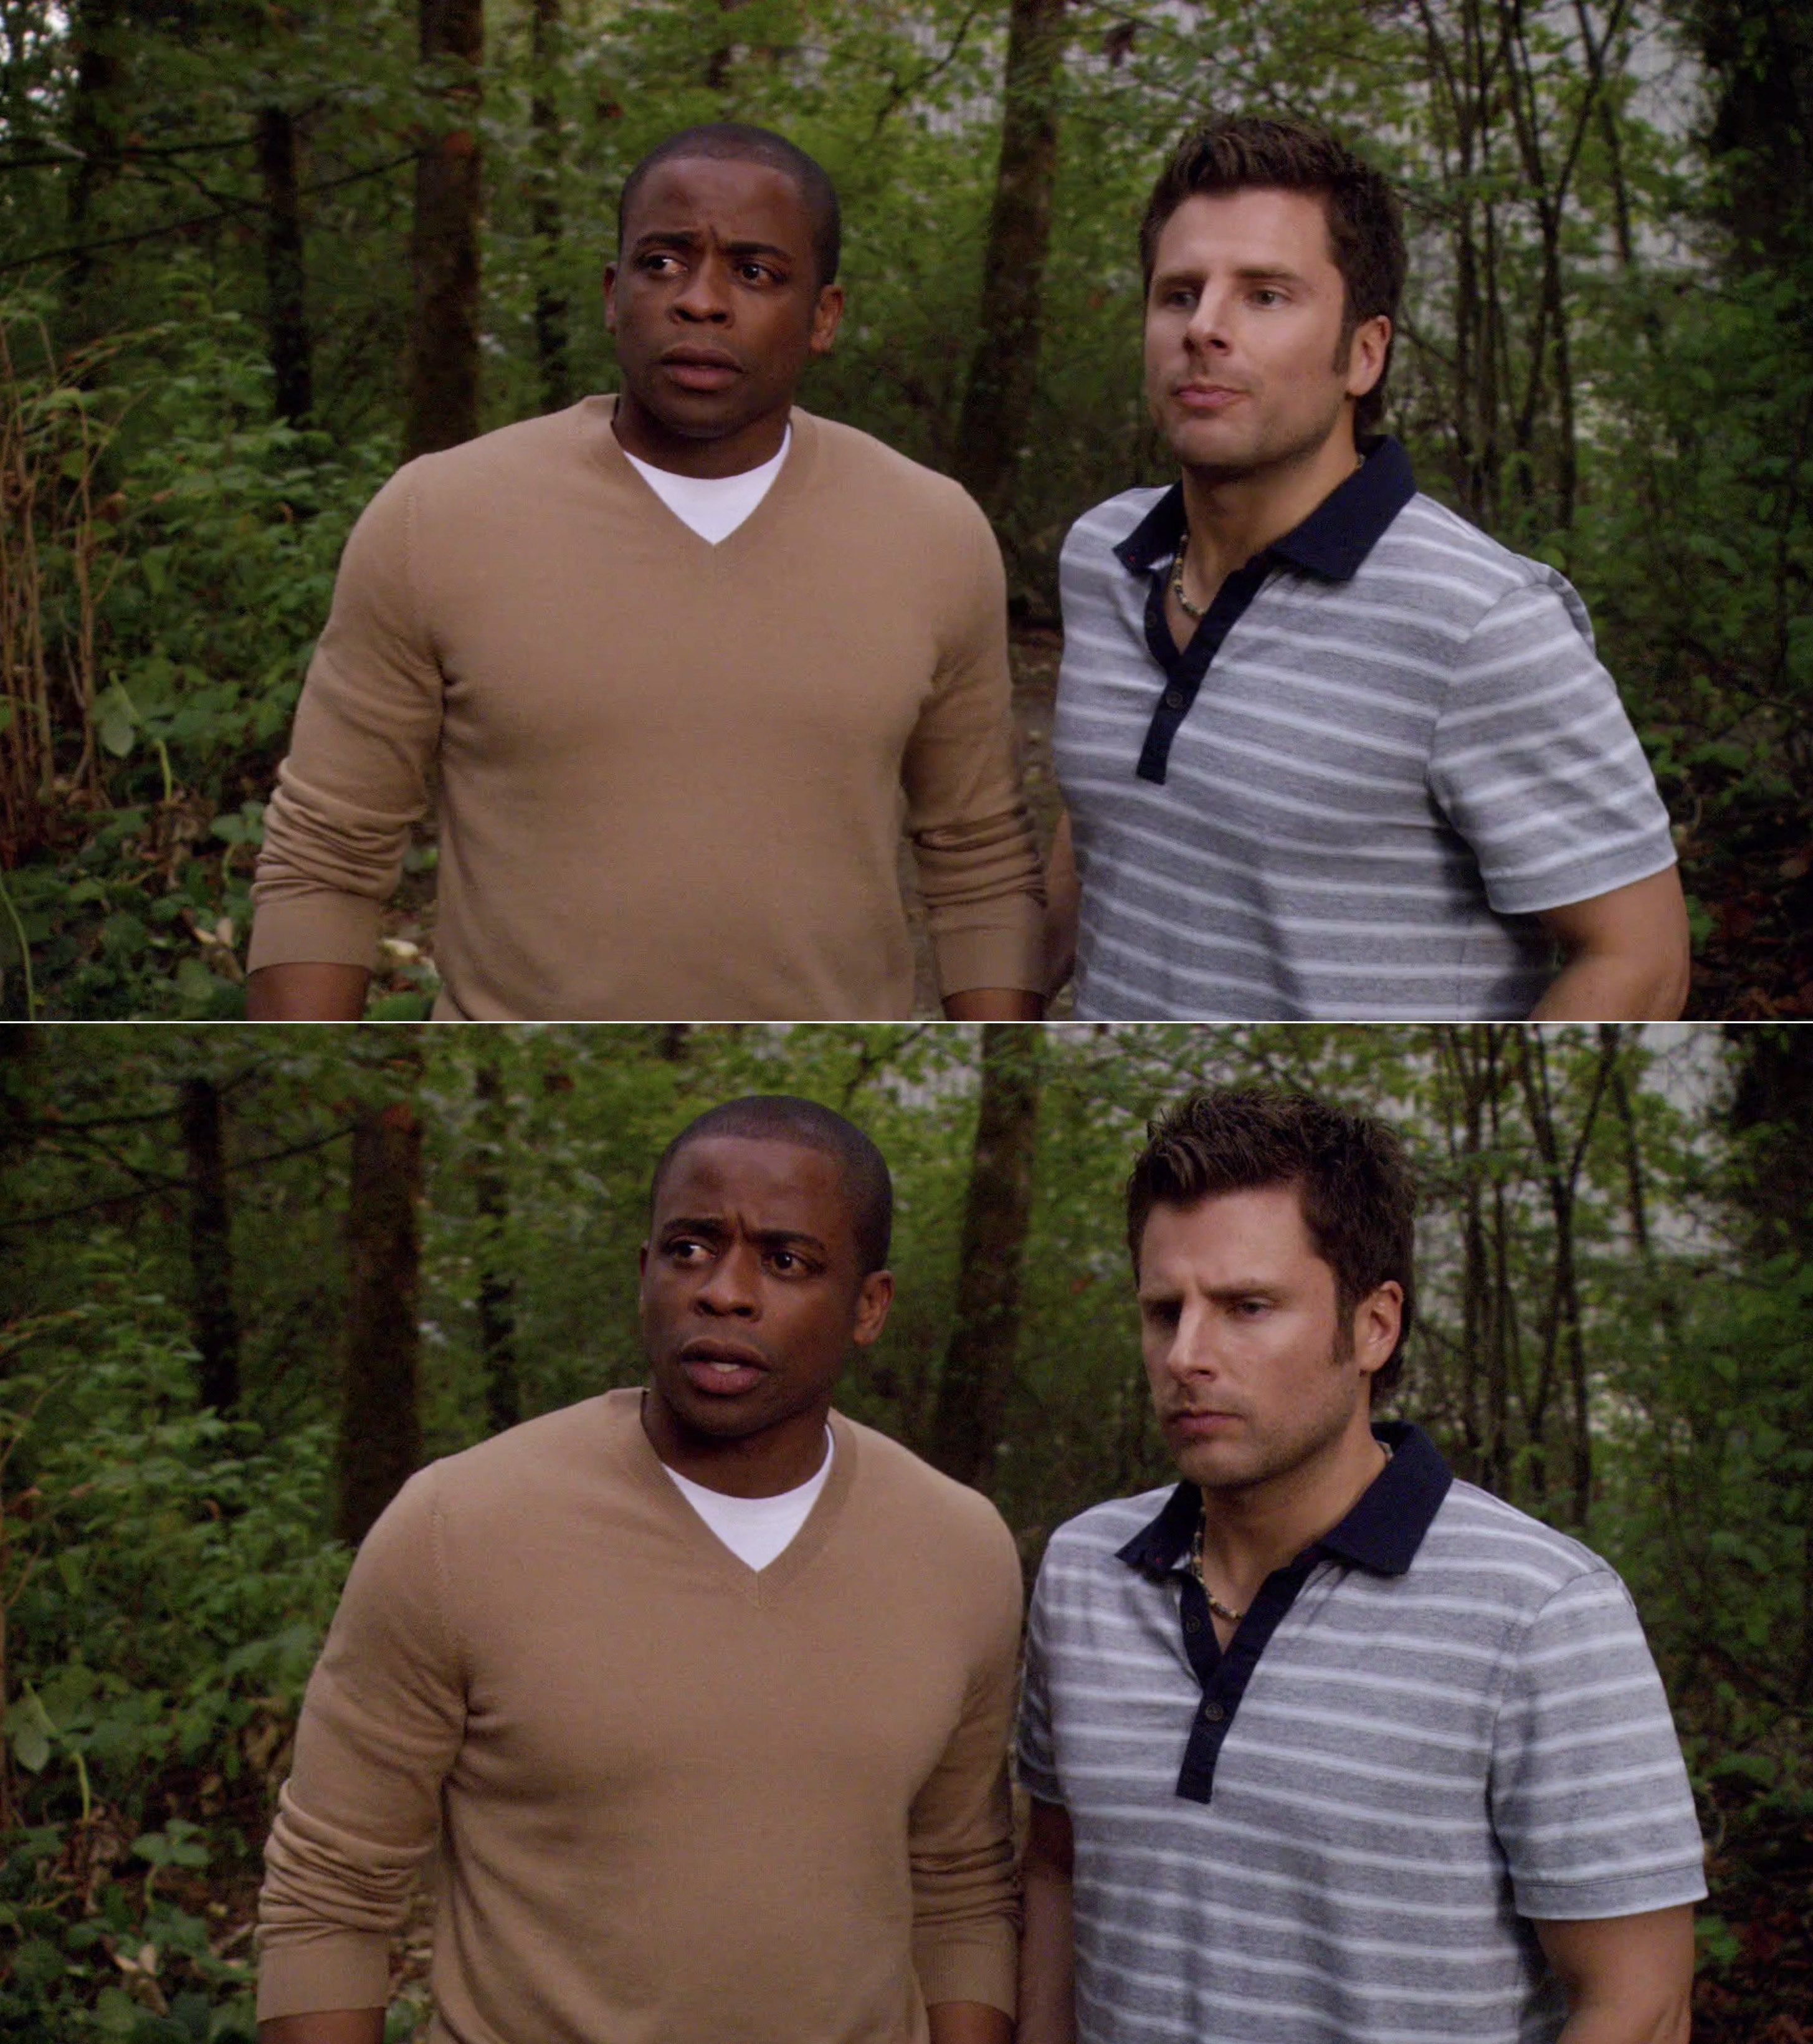 Gus and Shawn standing next to each other looking confused